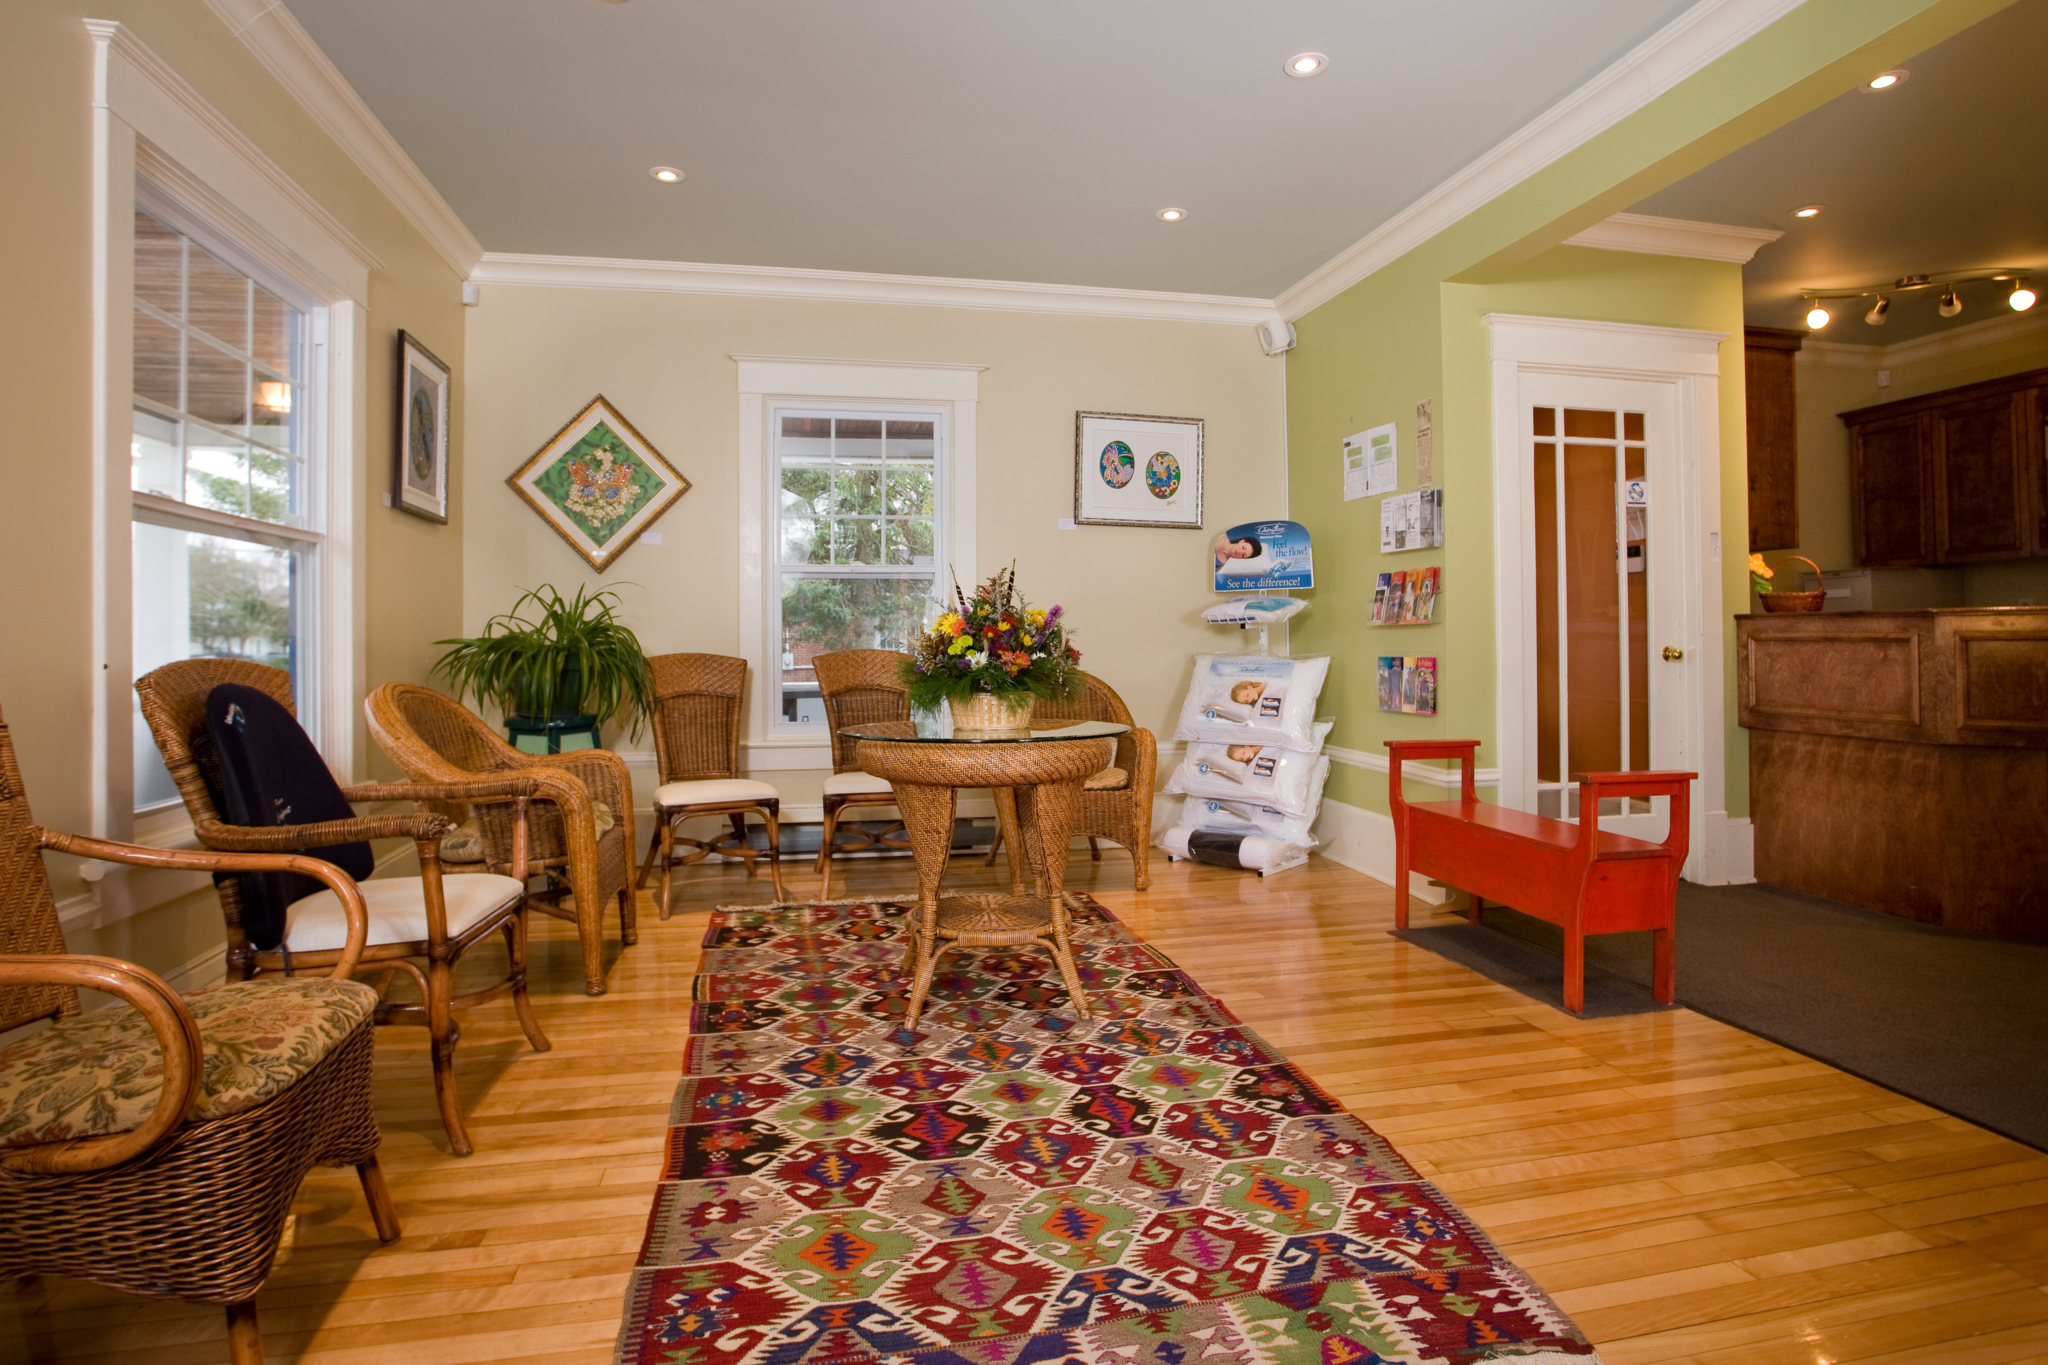 Chiropratique Familiale Lennoxville in Sherbrooke